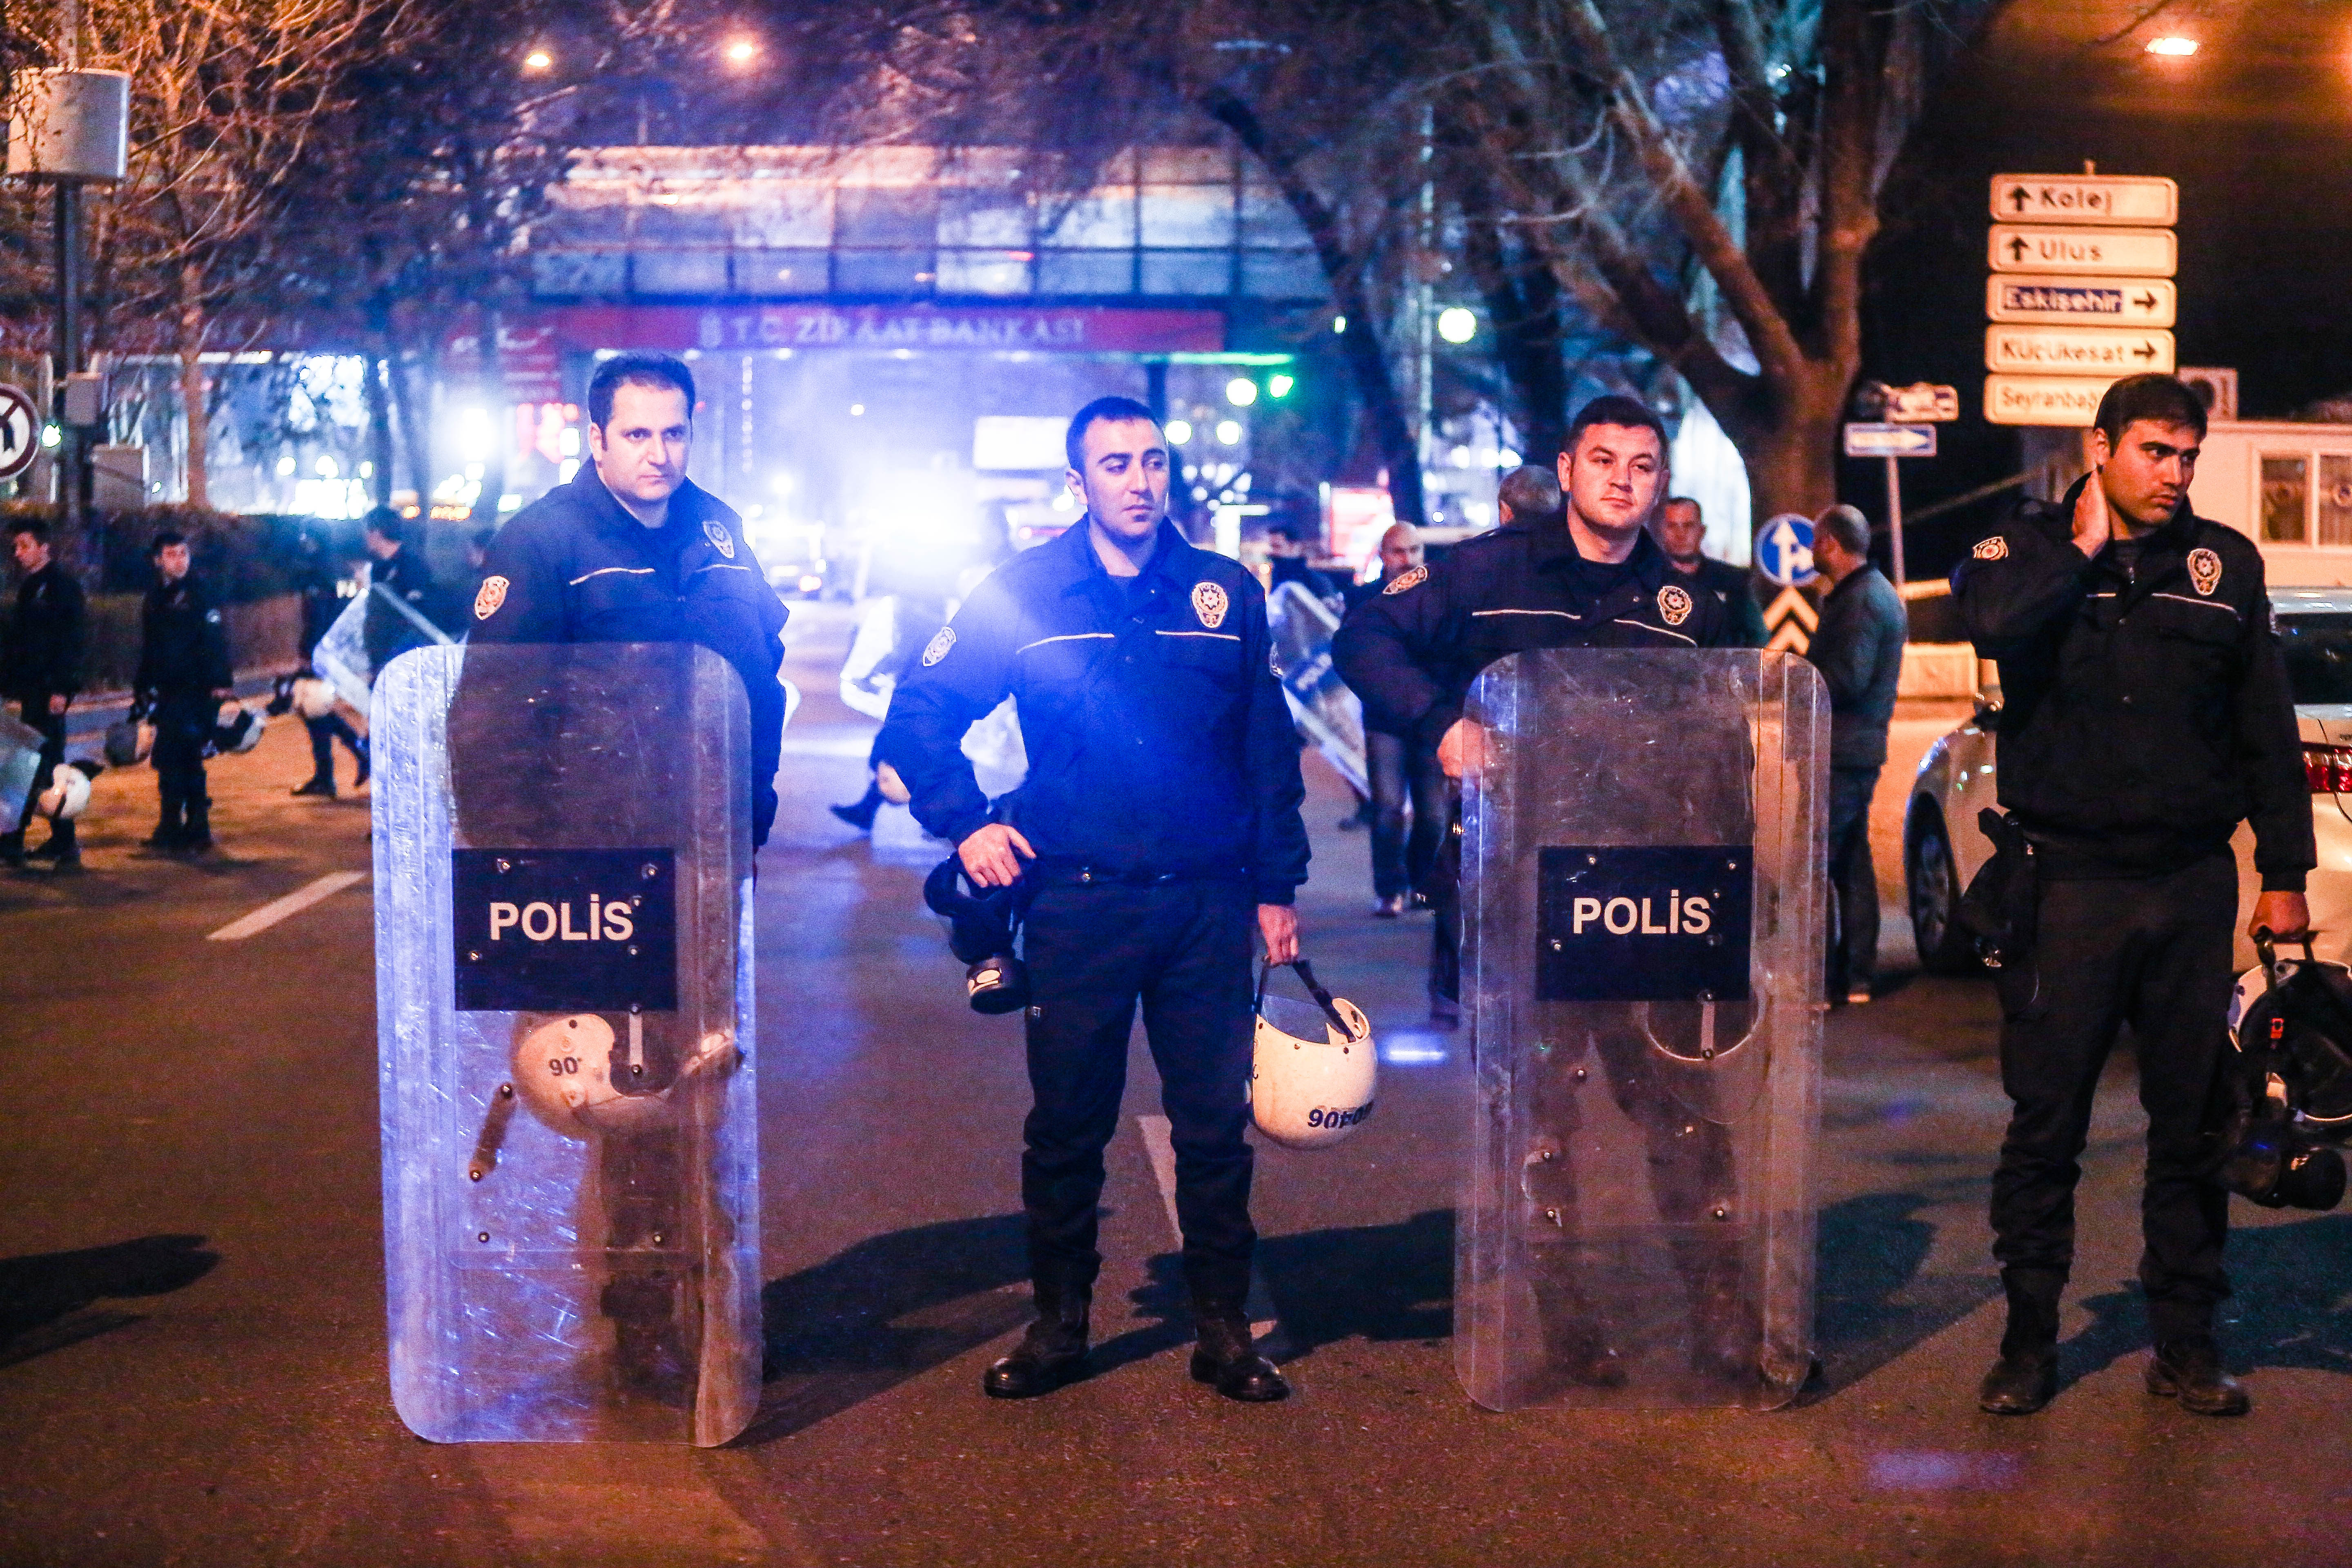 Turkish riot police secure the scene after an explosion in Ankara's central Kizilay district on March 13, 2016.